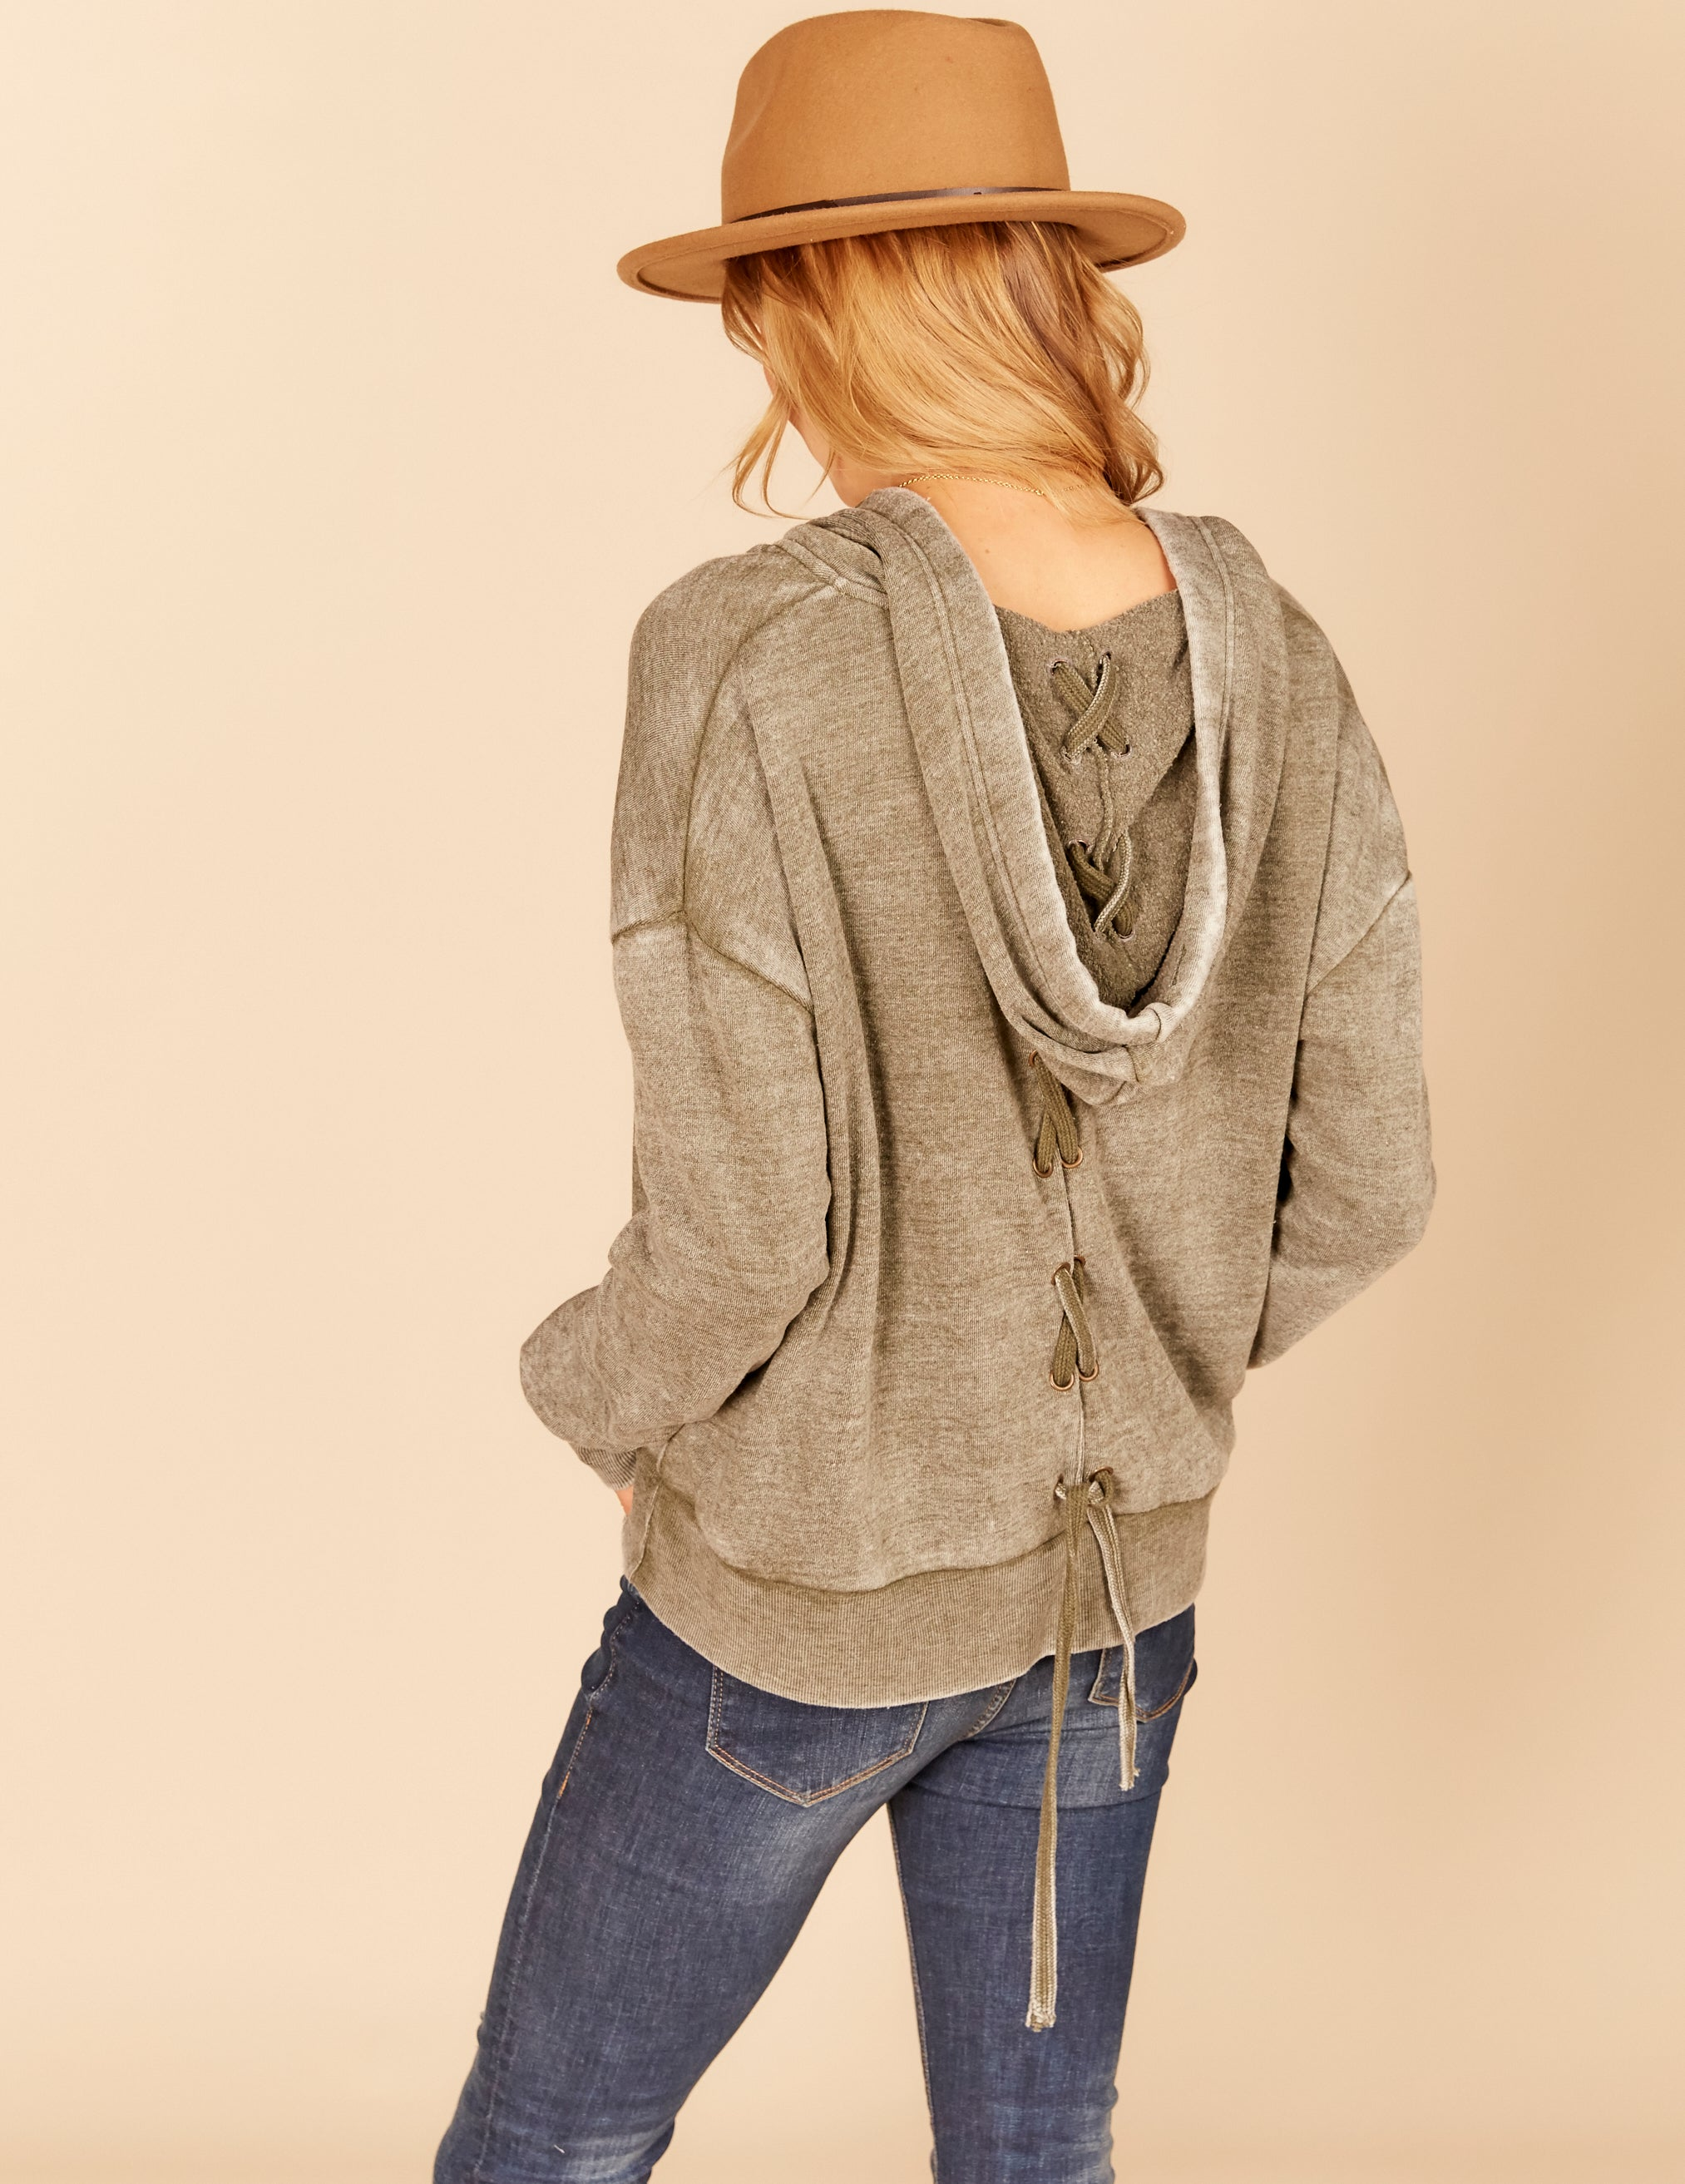 New Burnout Lace Up Back Boxy Crop Hoody